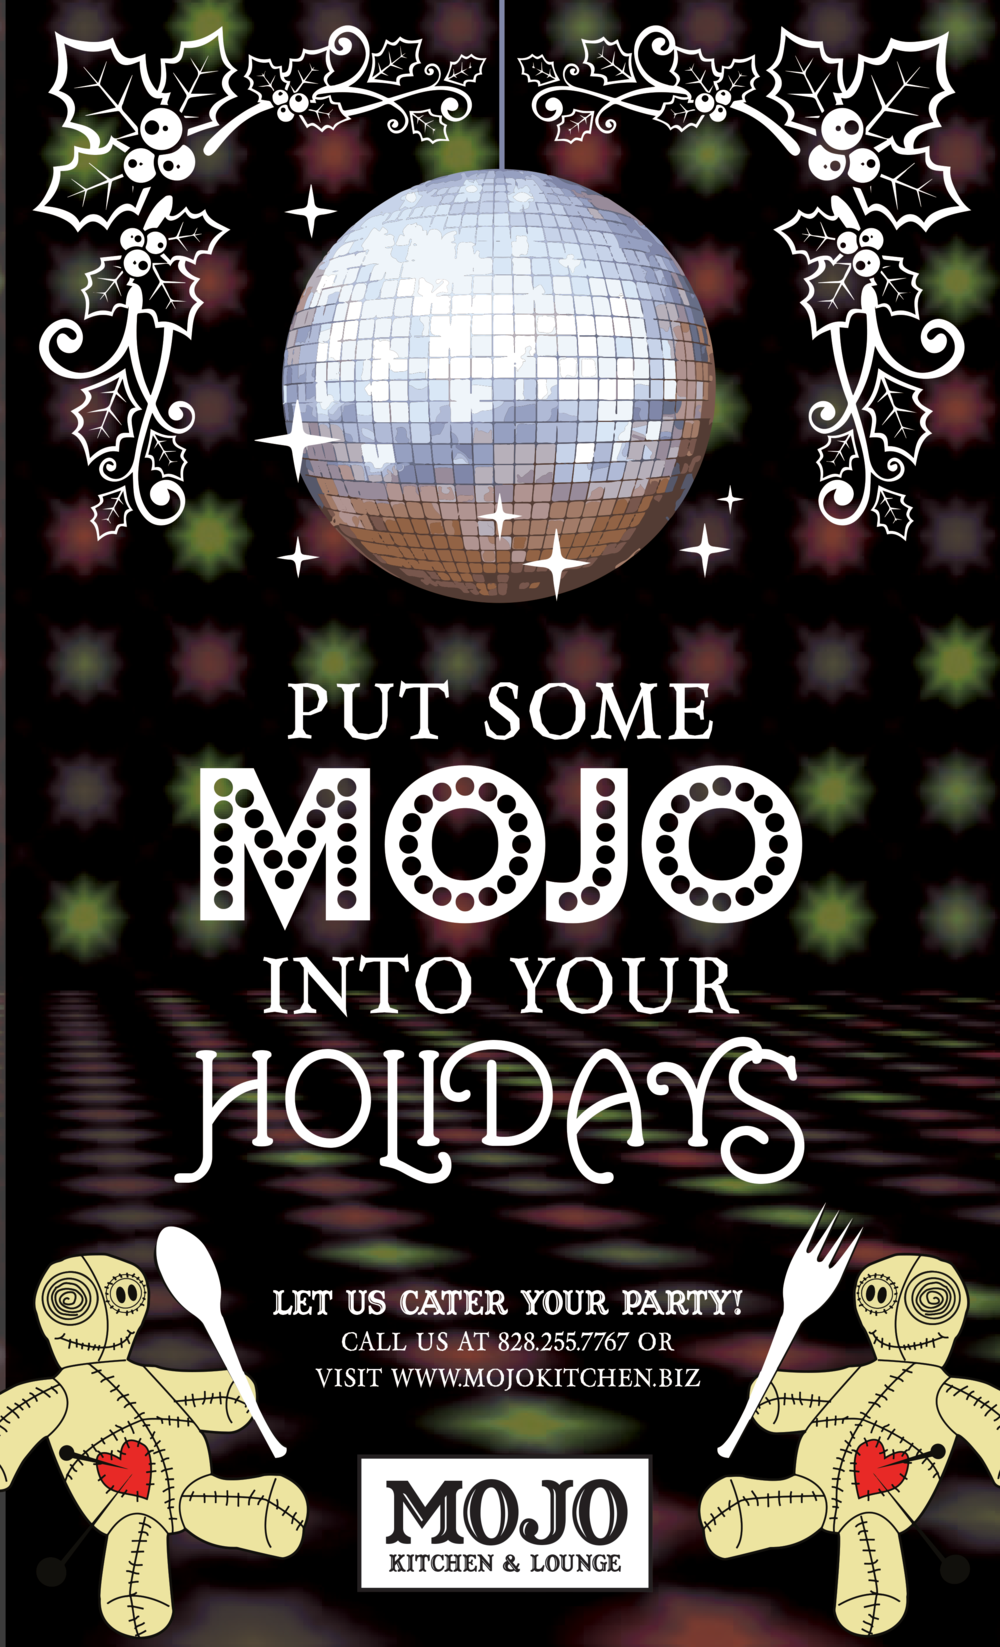 Mojo Kitchen & Lounge Holiday Catering Flyer